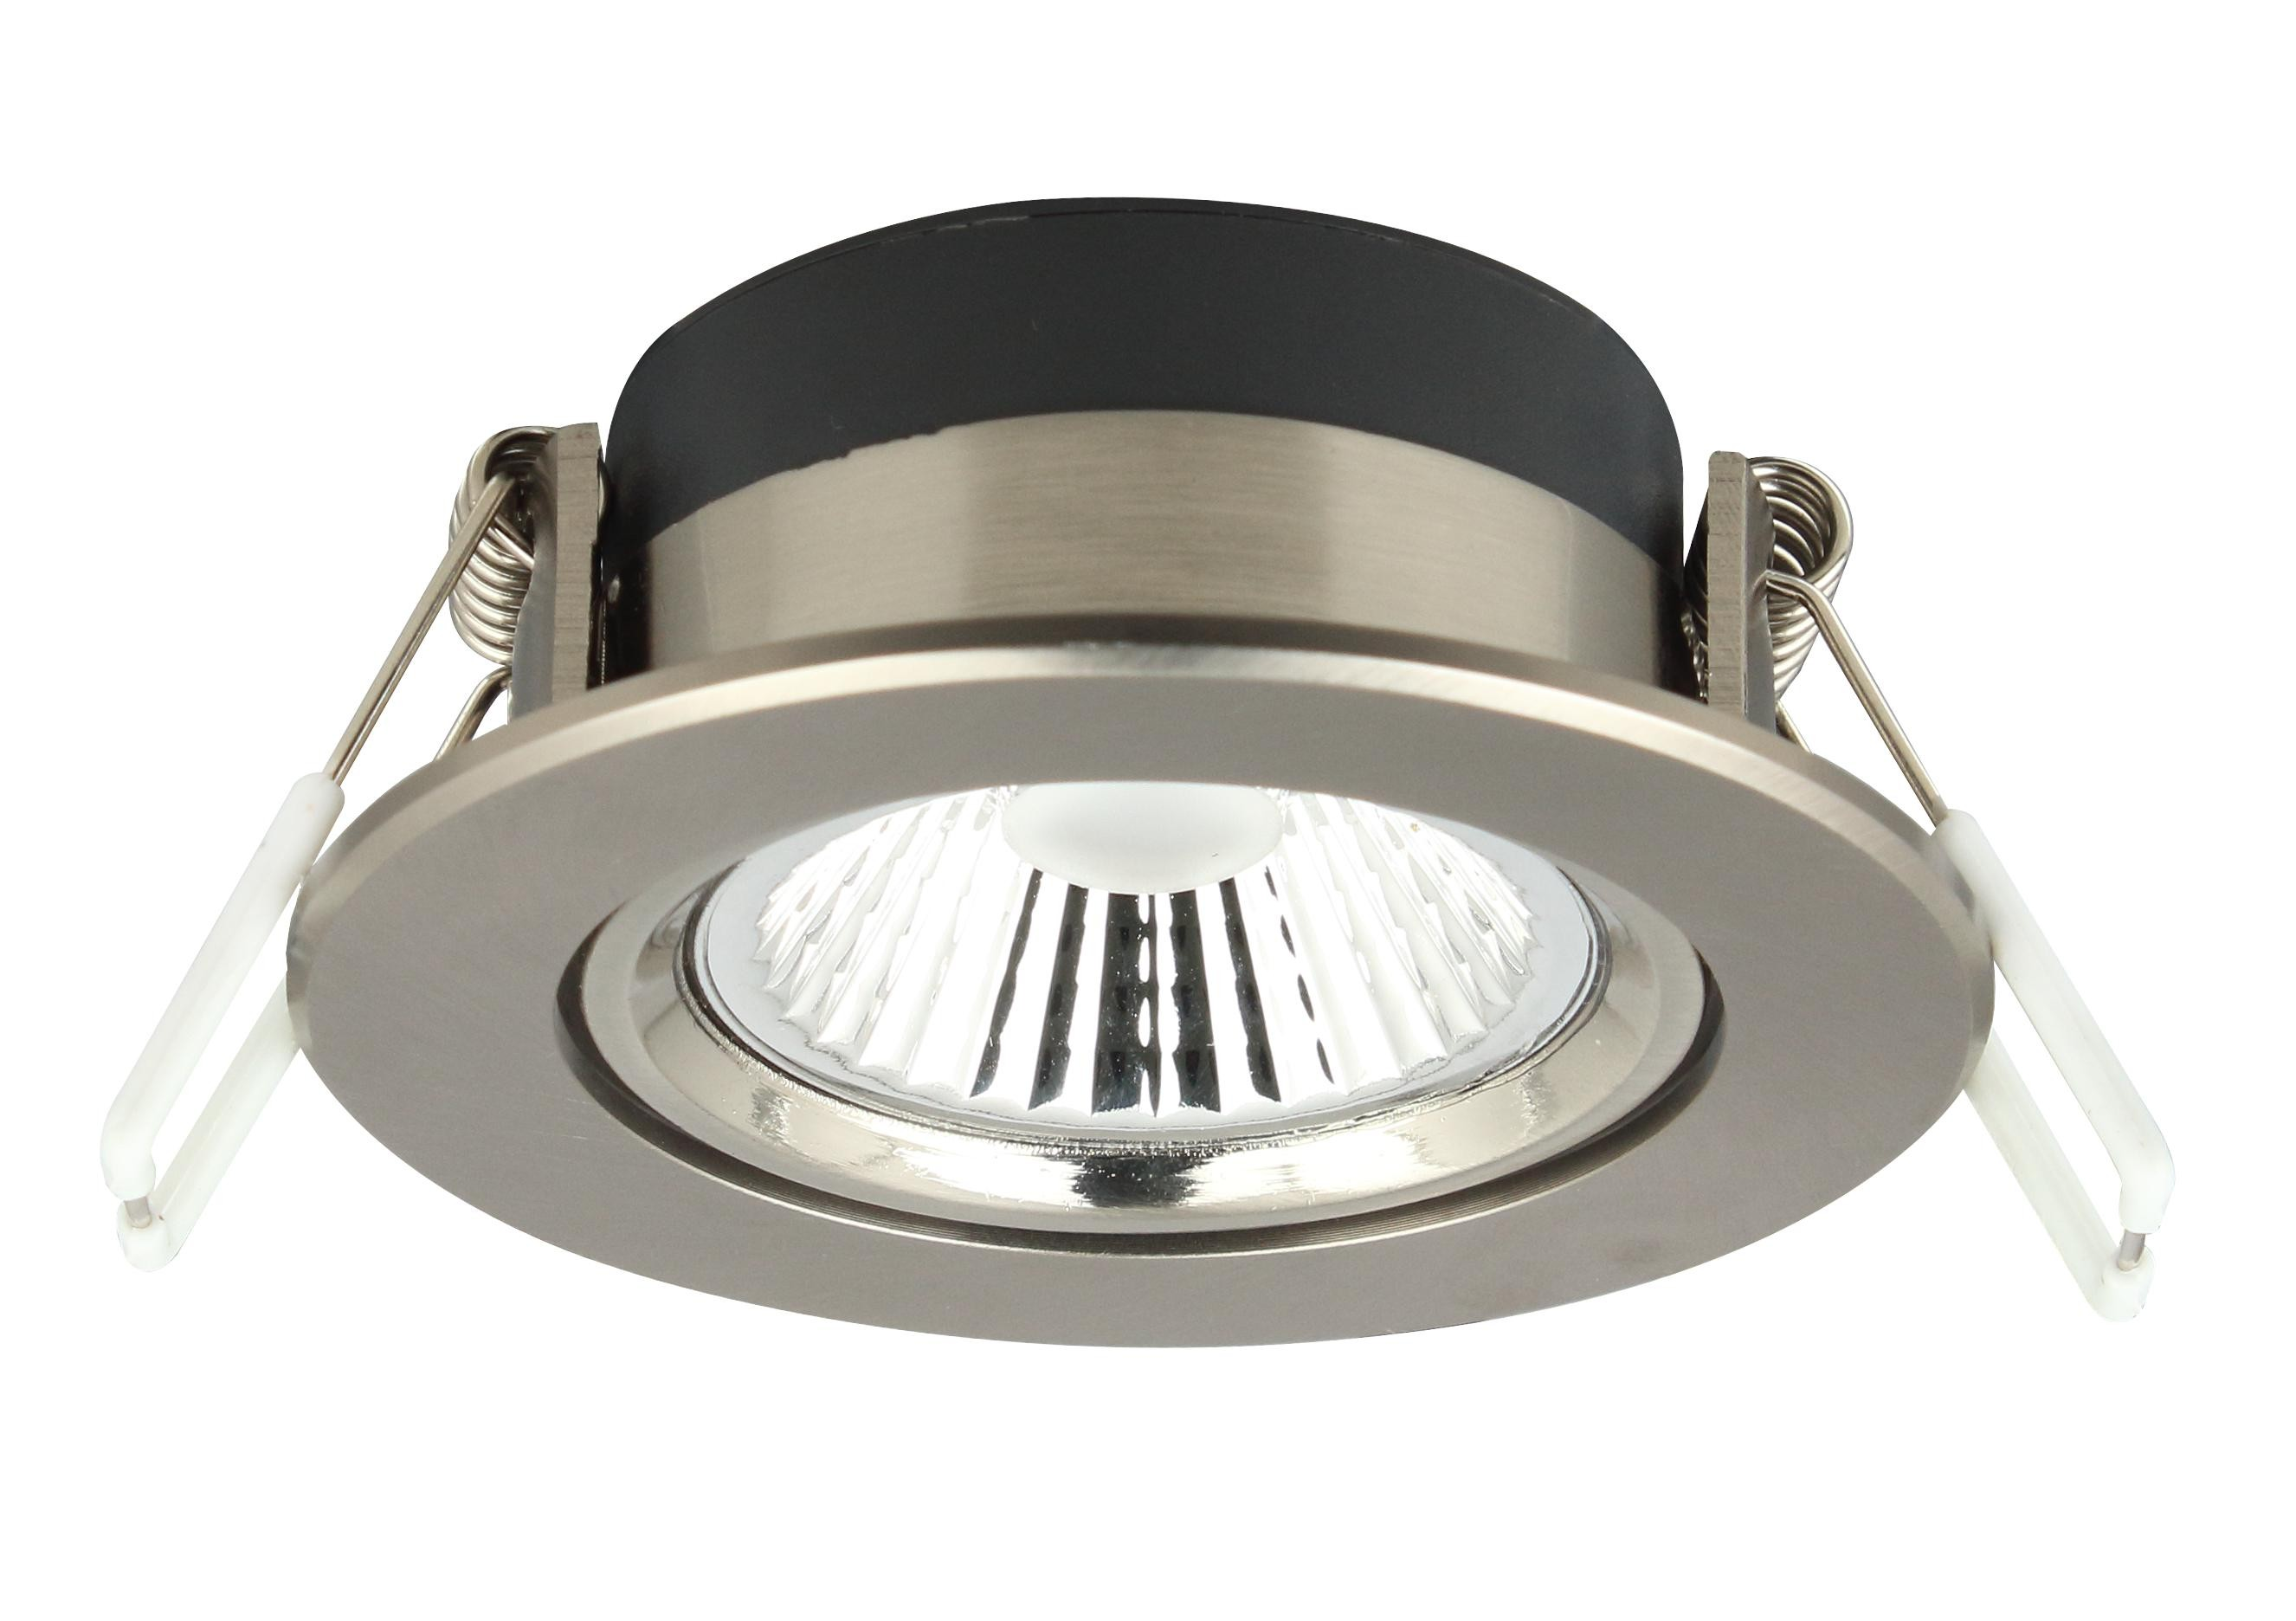 Led 230v Dimmbar Dimmbar Led Beautiful Led Wandleuchte Dimmbar Rund Mm